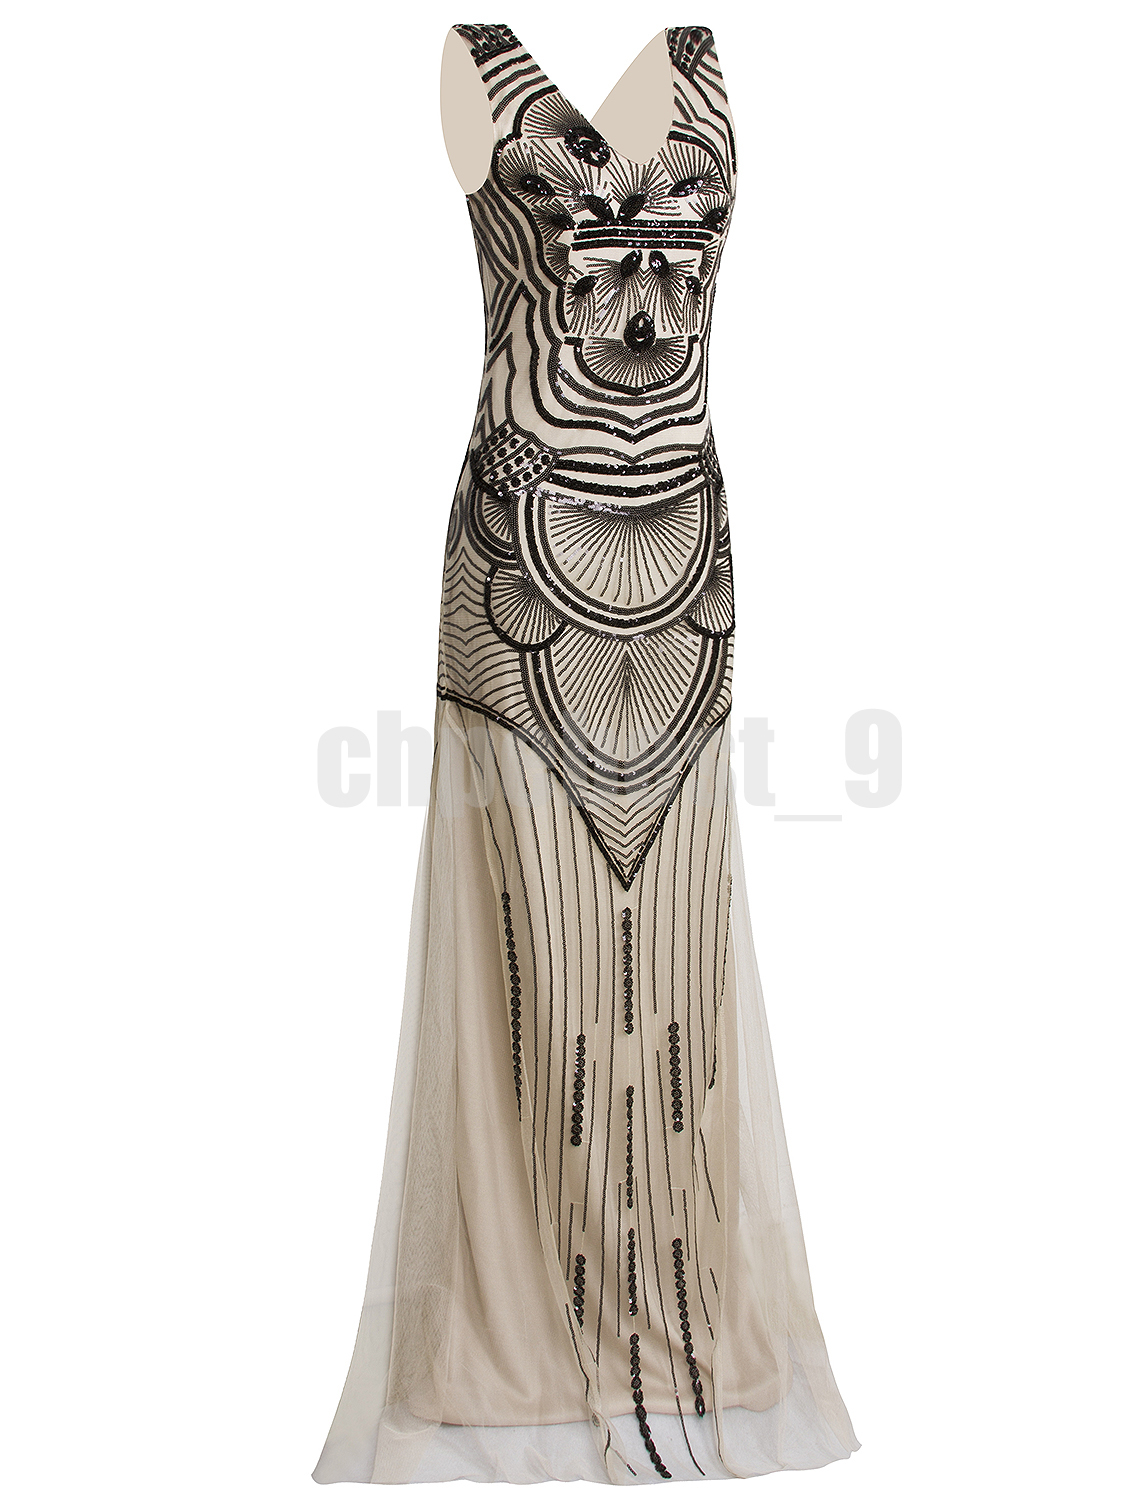 082b532c564 Ball Gown 1920s Flapper Dress Gatsby Party Wedding Evening Dresses Plus Size  XXL